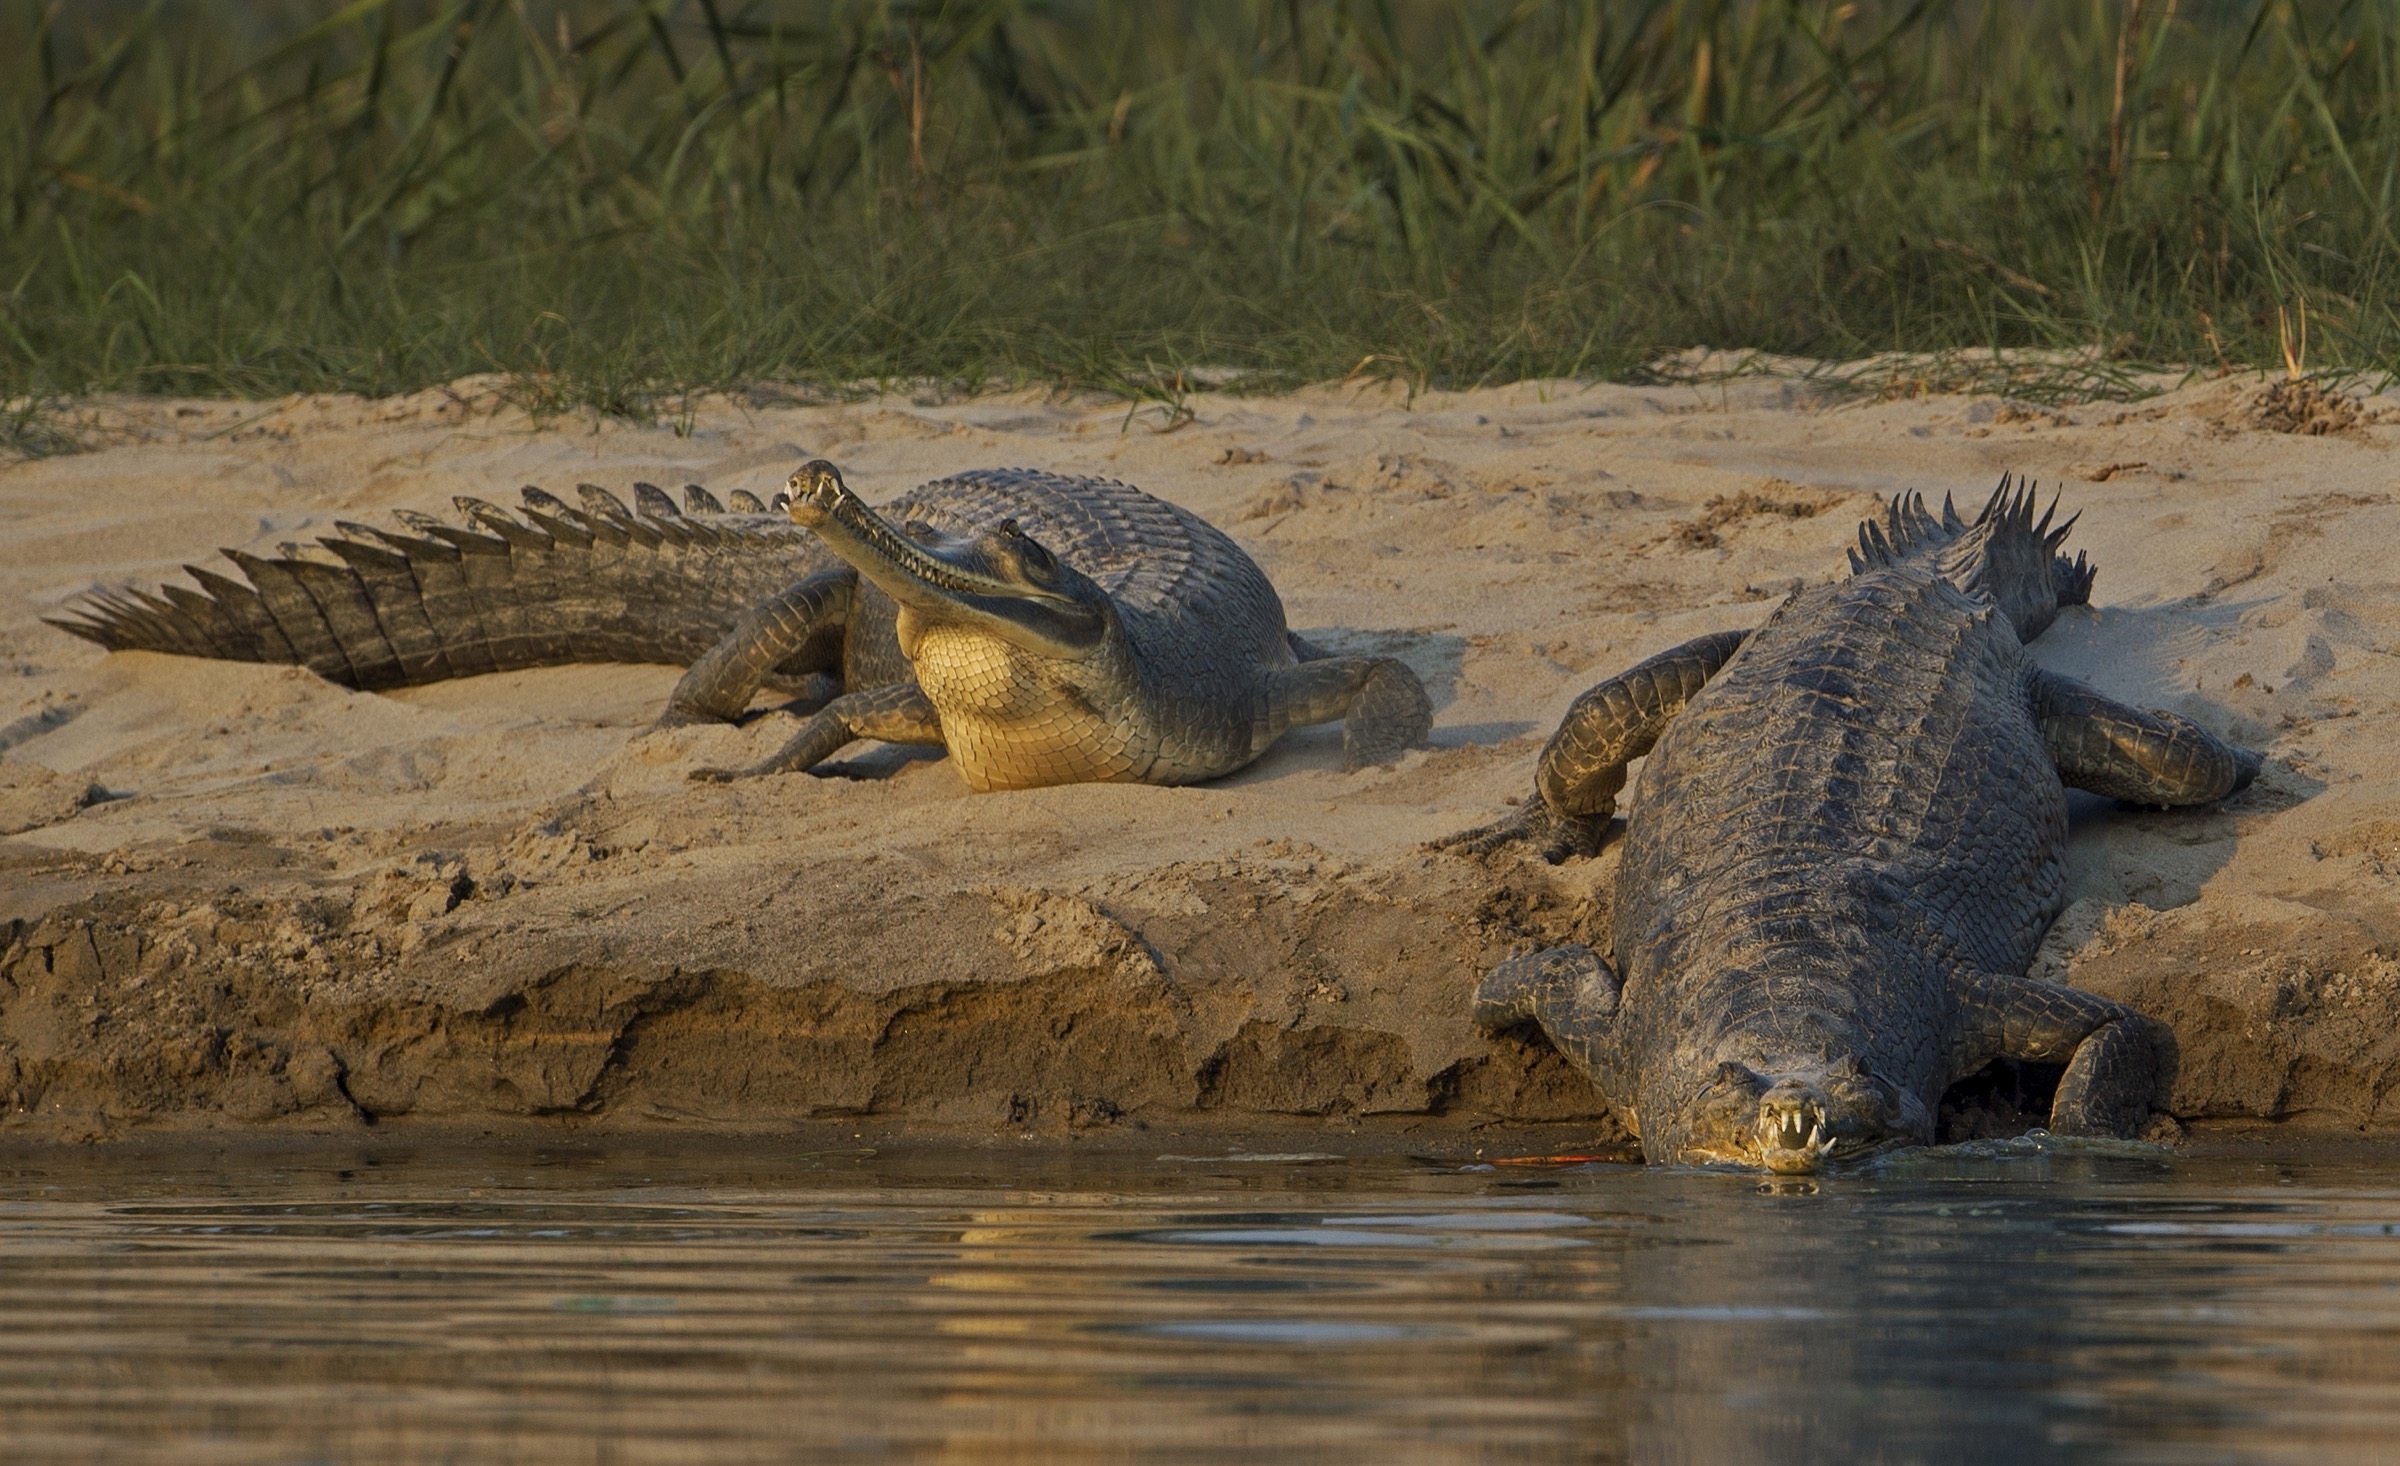 Gharials bask on the wide, sandy banks of the Chambal during the dry season.